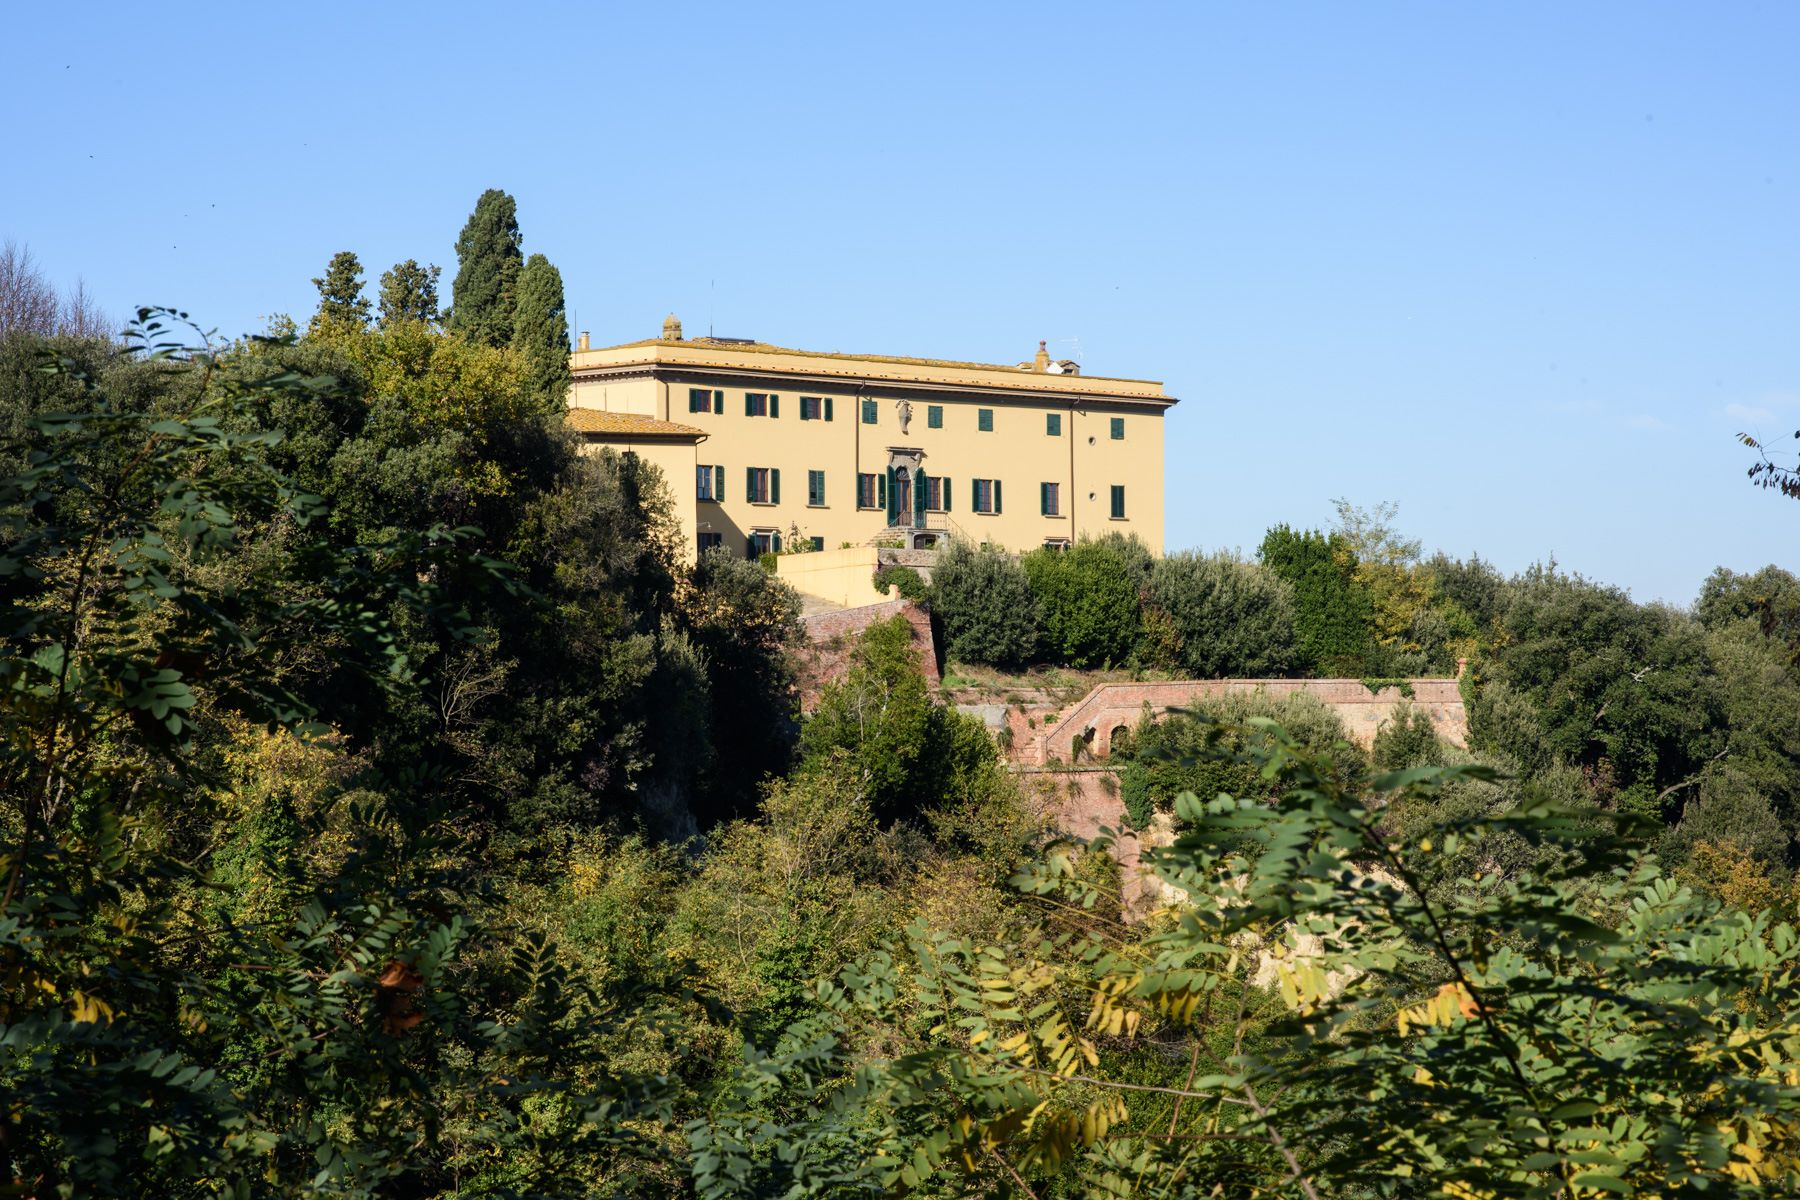 Single Family Home for Sale at Historic Estate in the Heart of Tuscany: Villa Strozzi in Collegalli Montaione, Florence, Italy